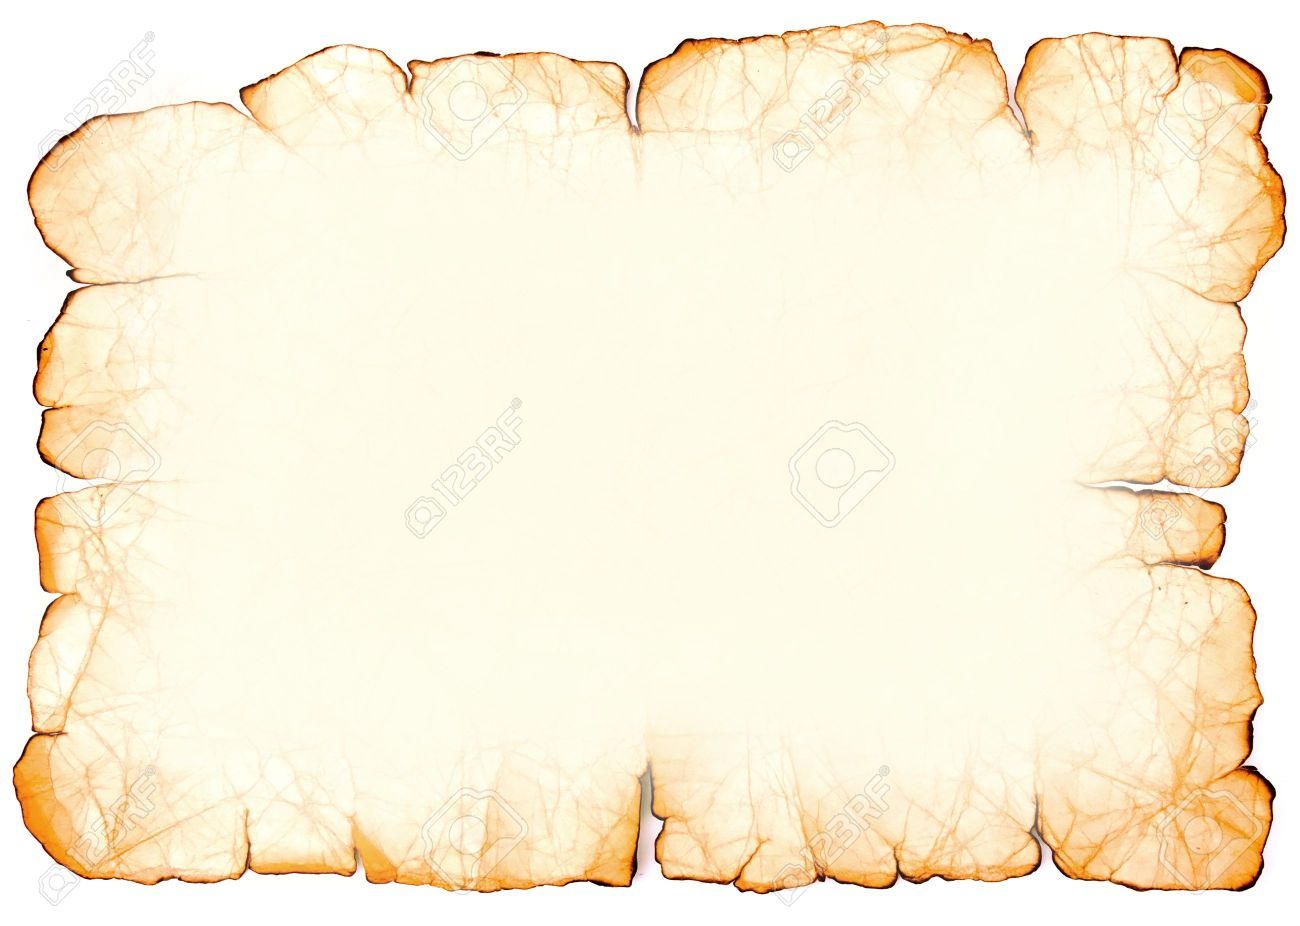 Imitation Of Old Paper. Frame. Stock Photo, Picture And Royalty Free ...